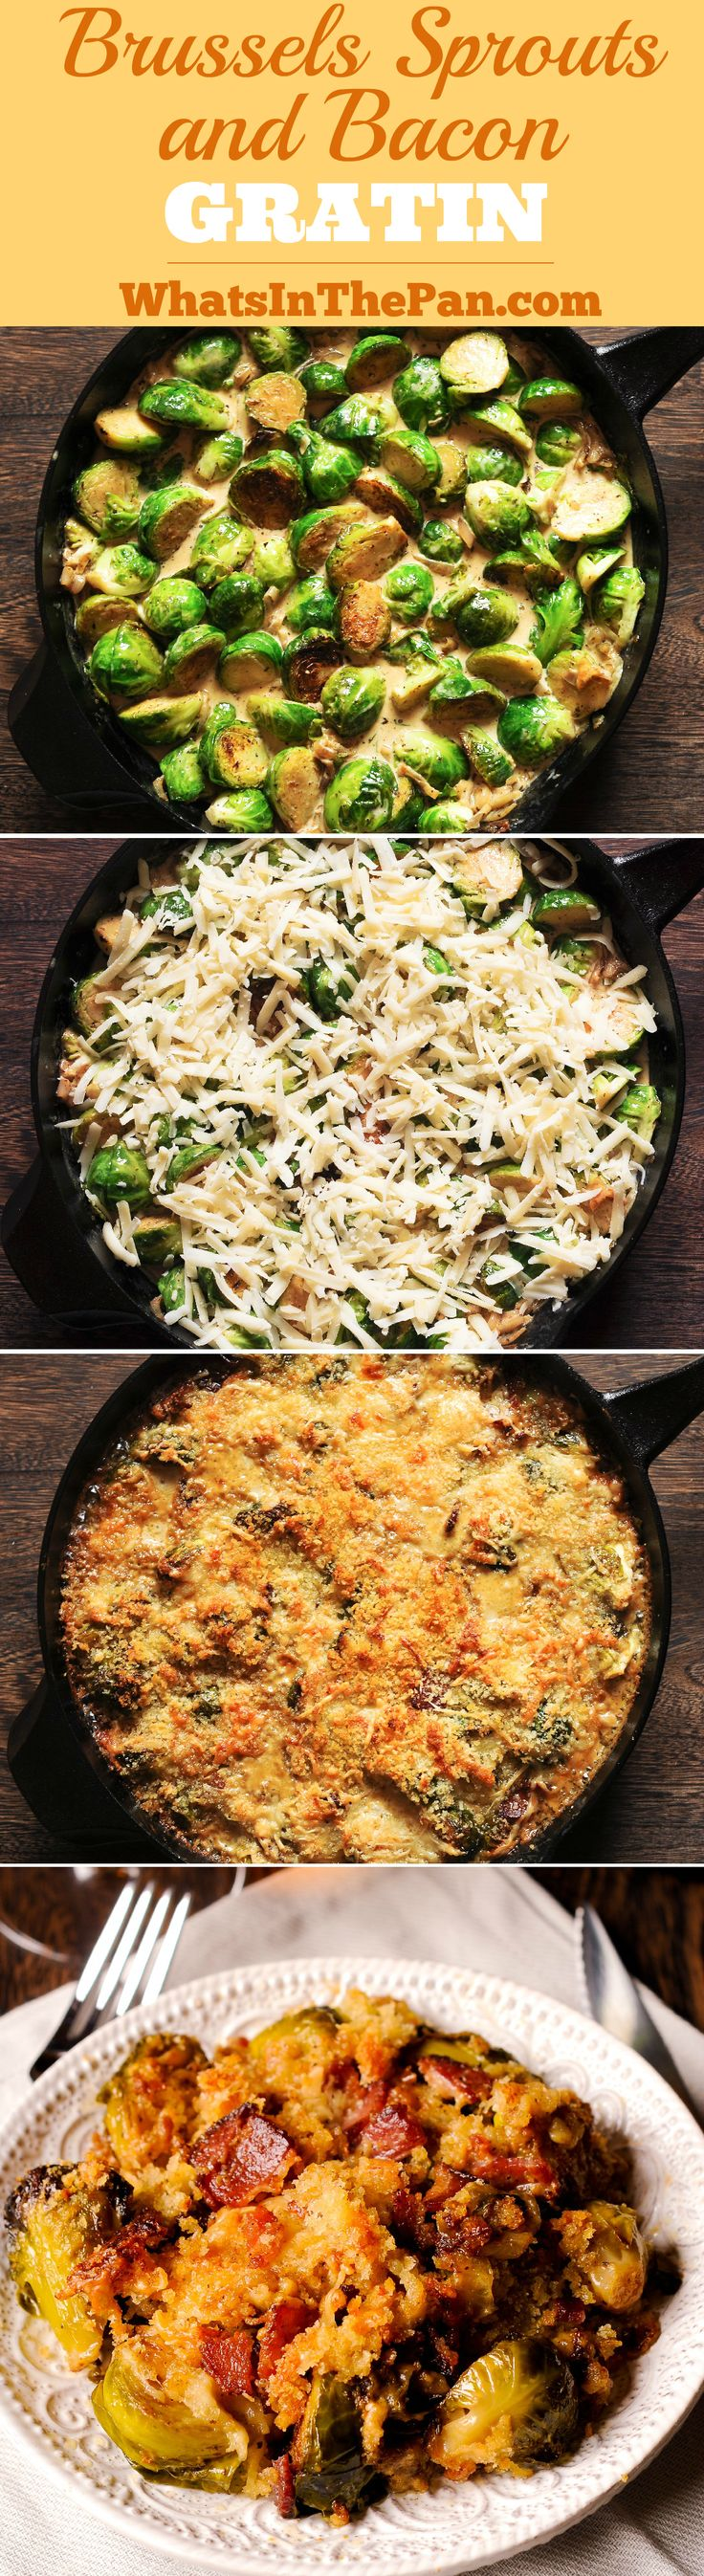 Brussels Sprouts and Bacon Gratin with Gruyère Cheese #Thanksgiving #holidays #sidedish